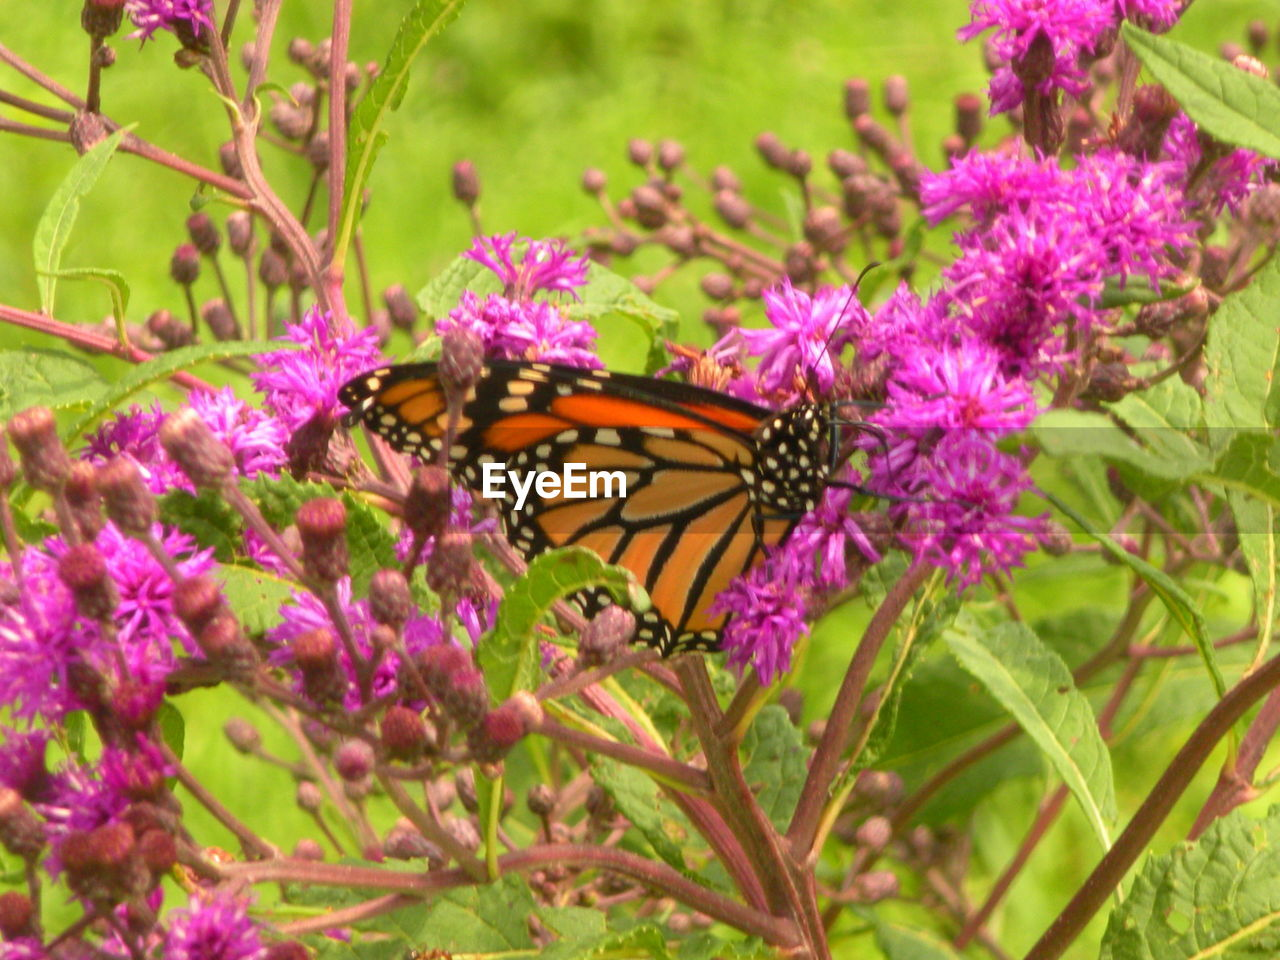 flower, flowering plant, animal wildlife, animal themes, invertebrate, insect, animal, one animal, plant, beauty in nature, animals in the wild, butterfly - insect, animal wing, growth, fragility, freshness, petal, close-up, vulnerability, flower head, no people, purple, pollination, outdoors, butterfly